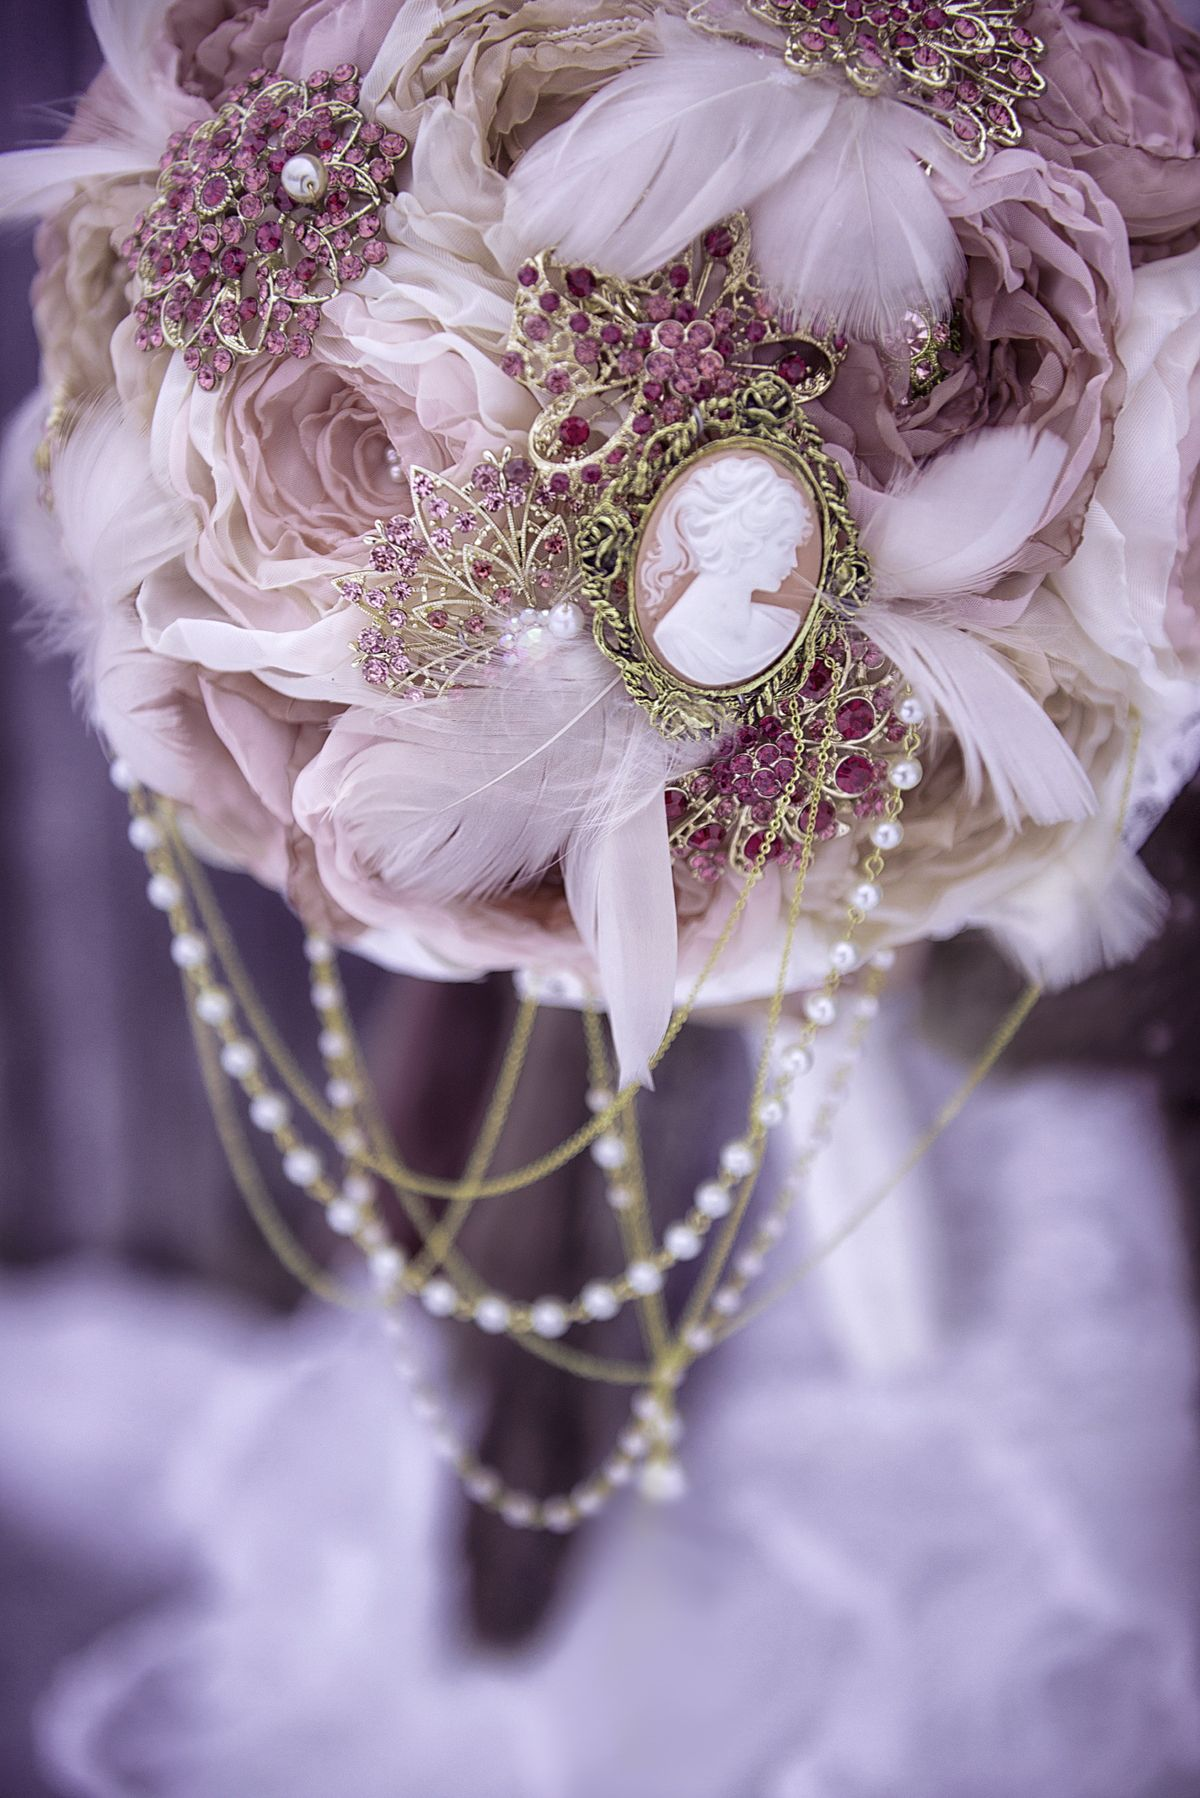 Fabric Flower And Brooch Bouquet Blush Pink Gold Victorian